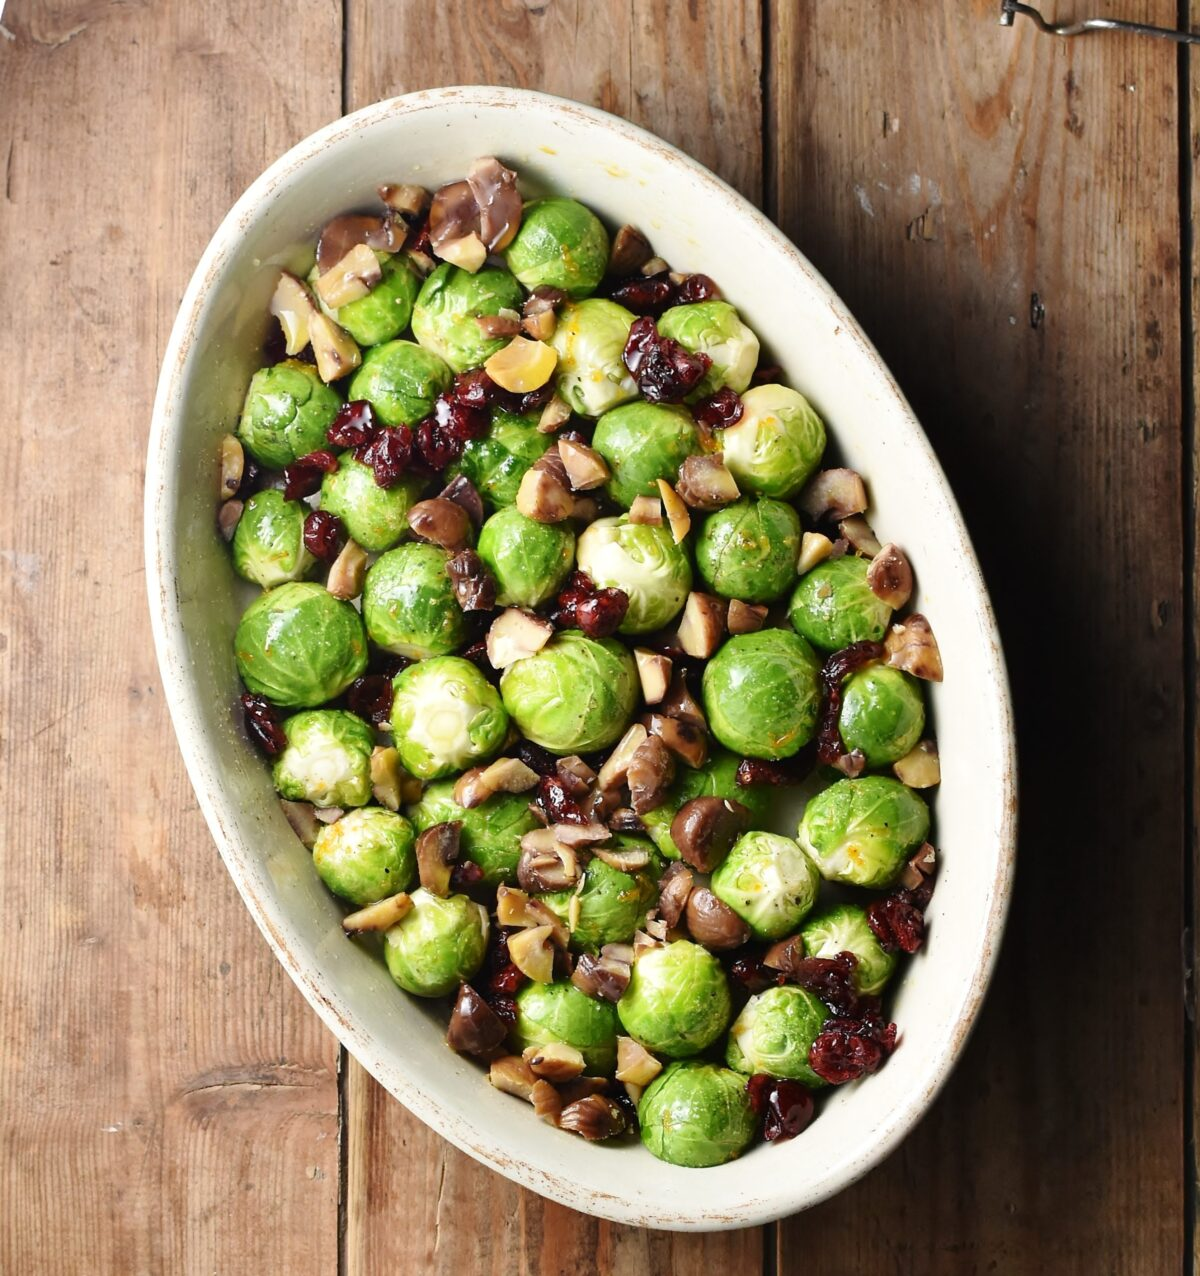 Brussels sprouts with dried cranberries and chestnuts in white oval dish.